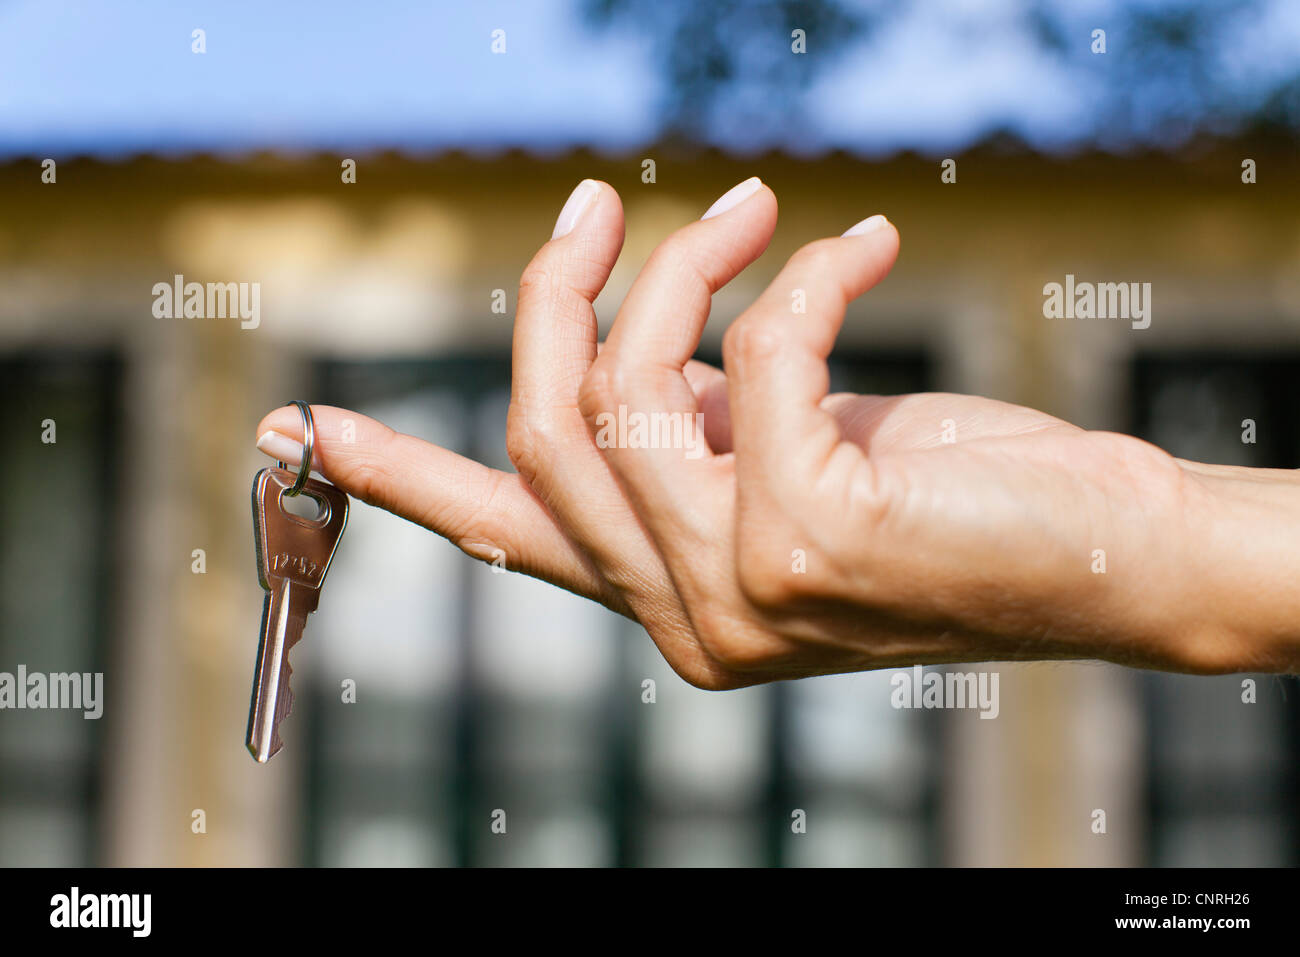 Woman's hand holding key, cropped - Stock Image